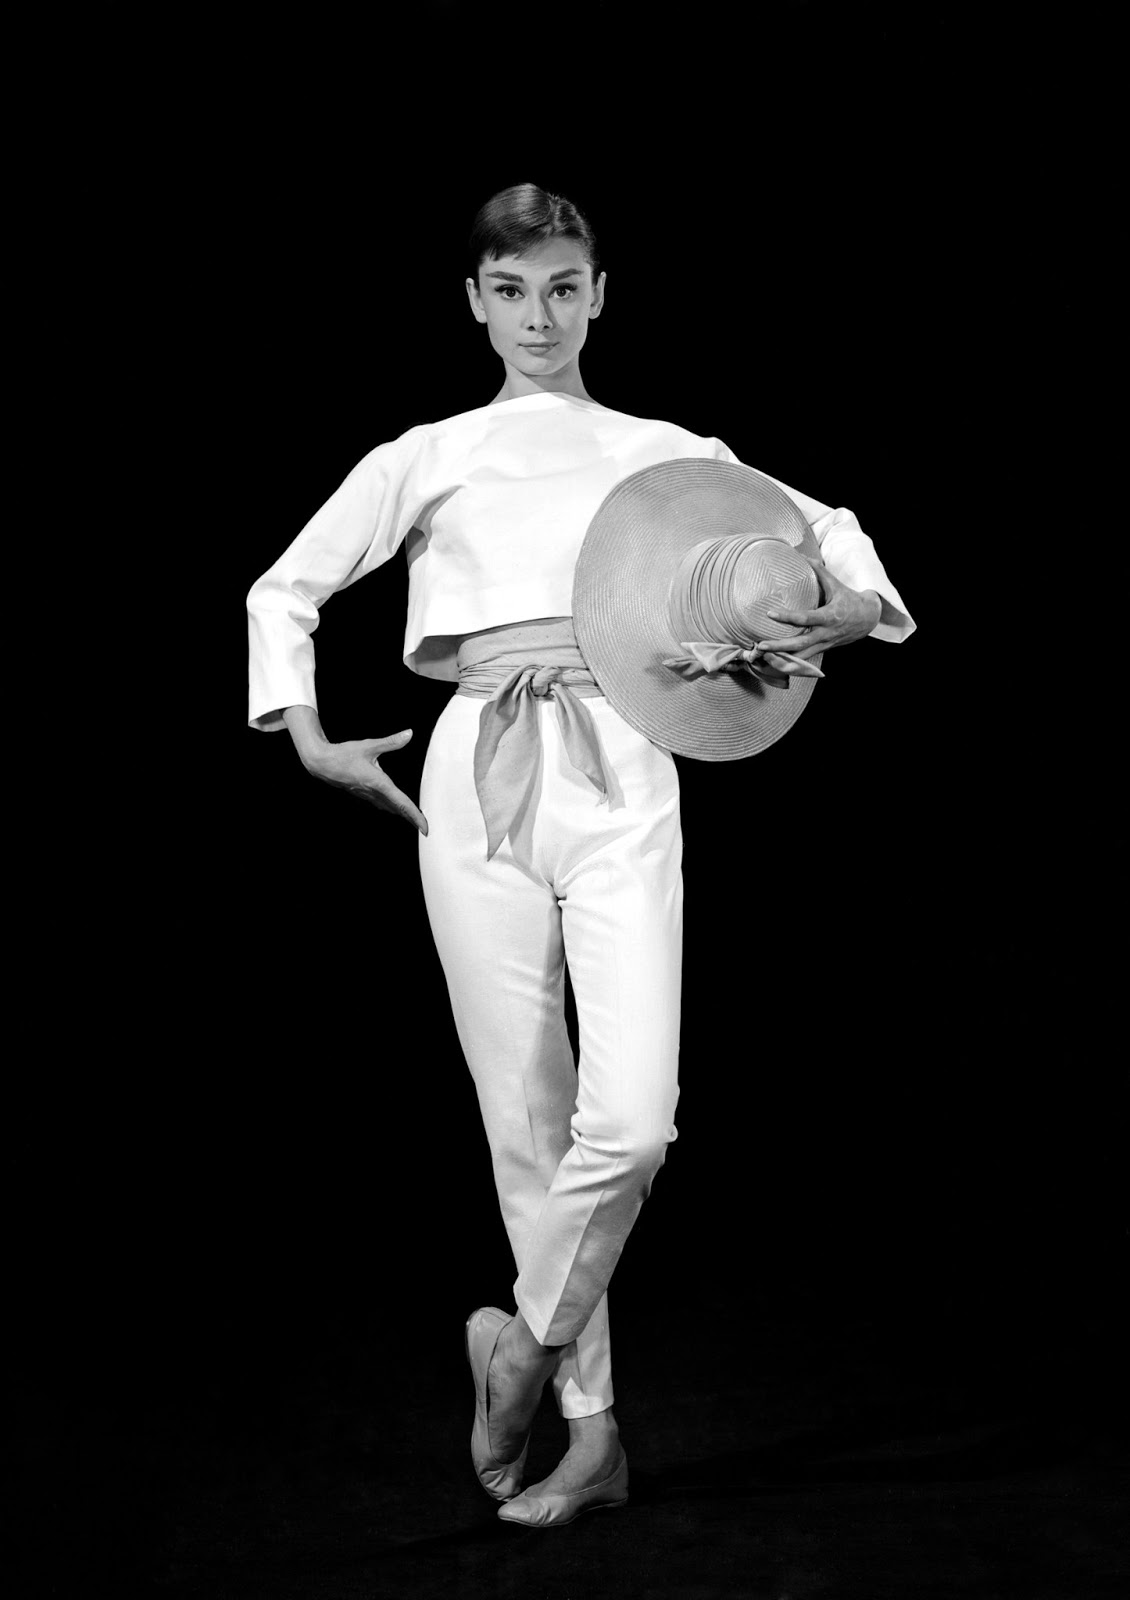 audrey hepburn feet celebrity pictures. Black Bedroom Furniture Sets. Home Design Ideas